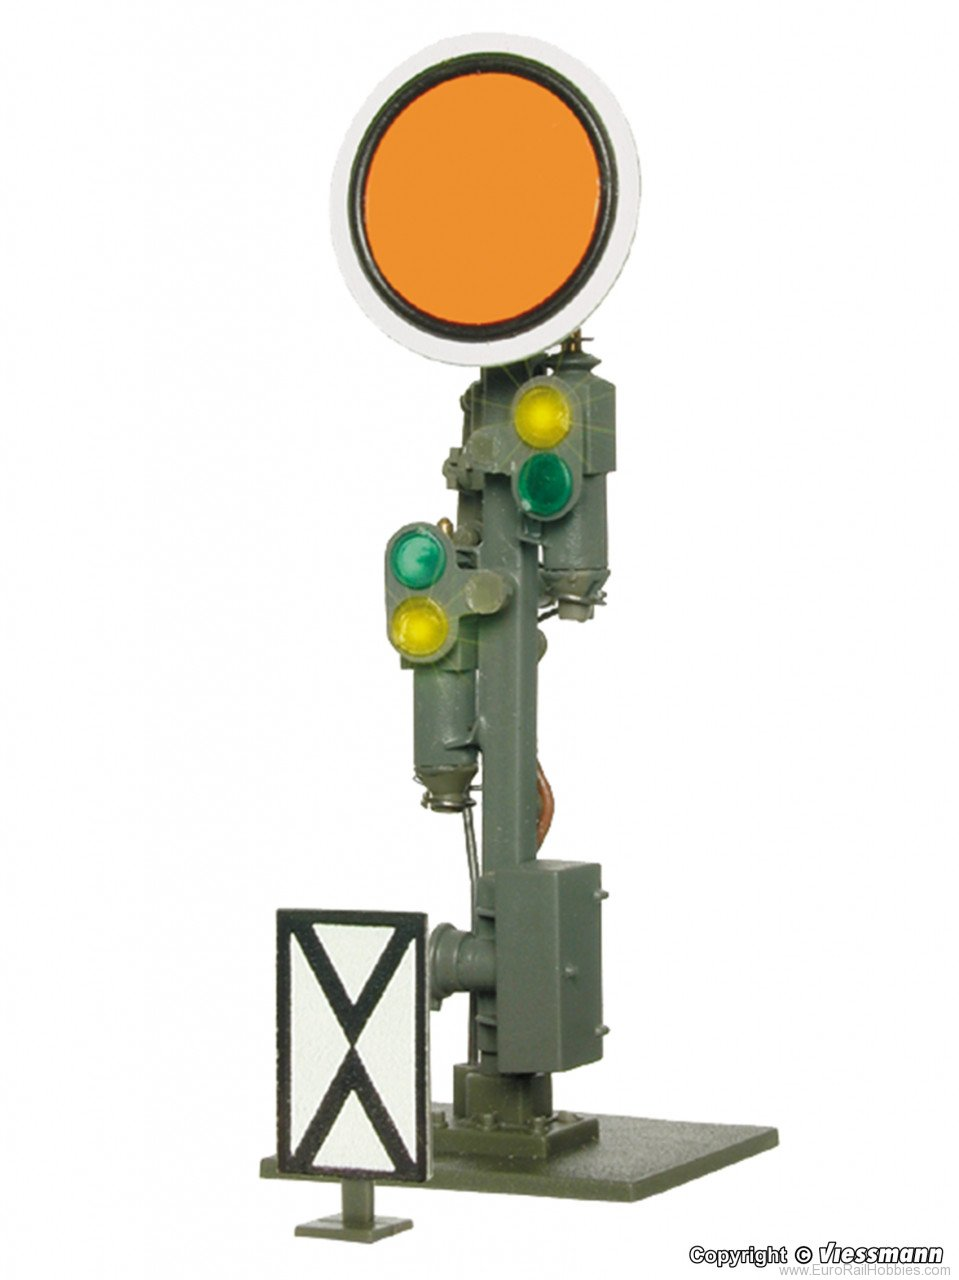 Viessmann 4509 HO Semaphore distant signal, movable disk